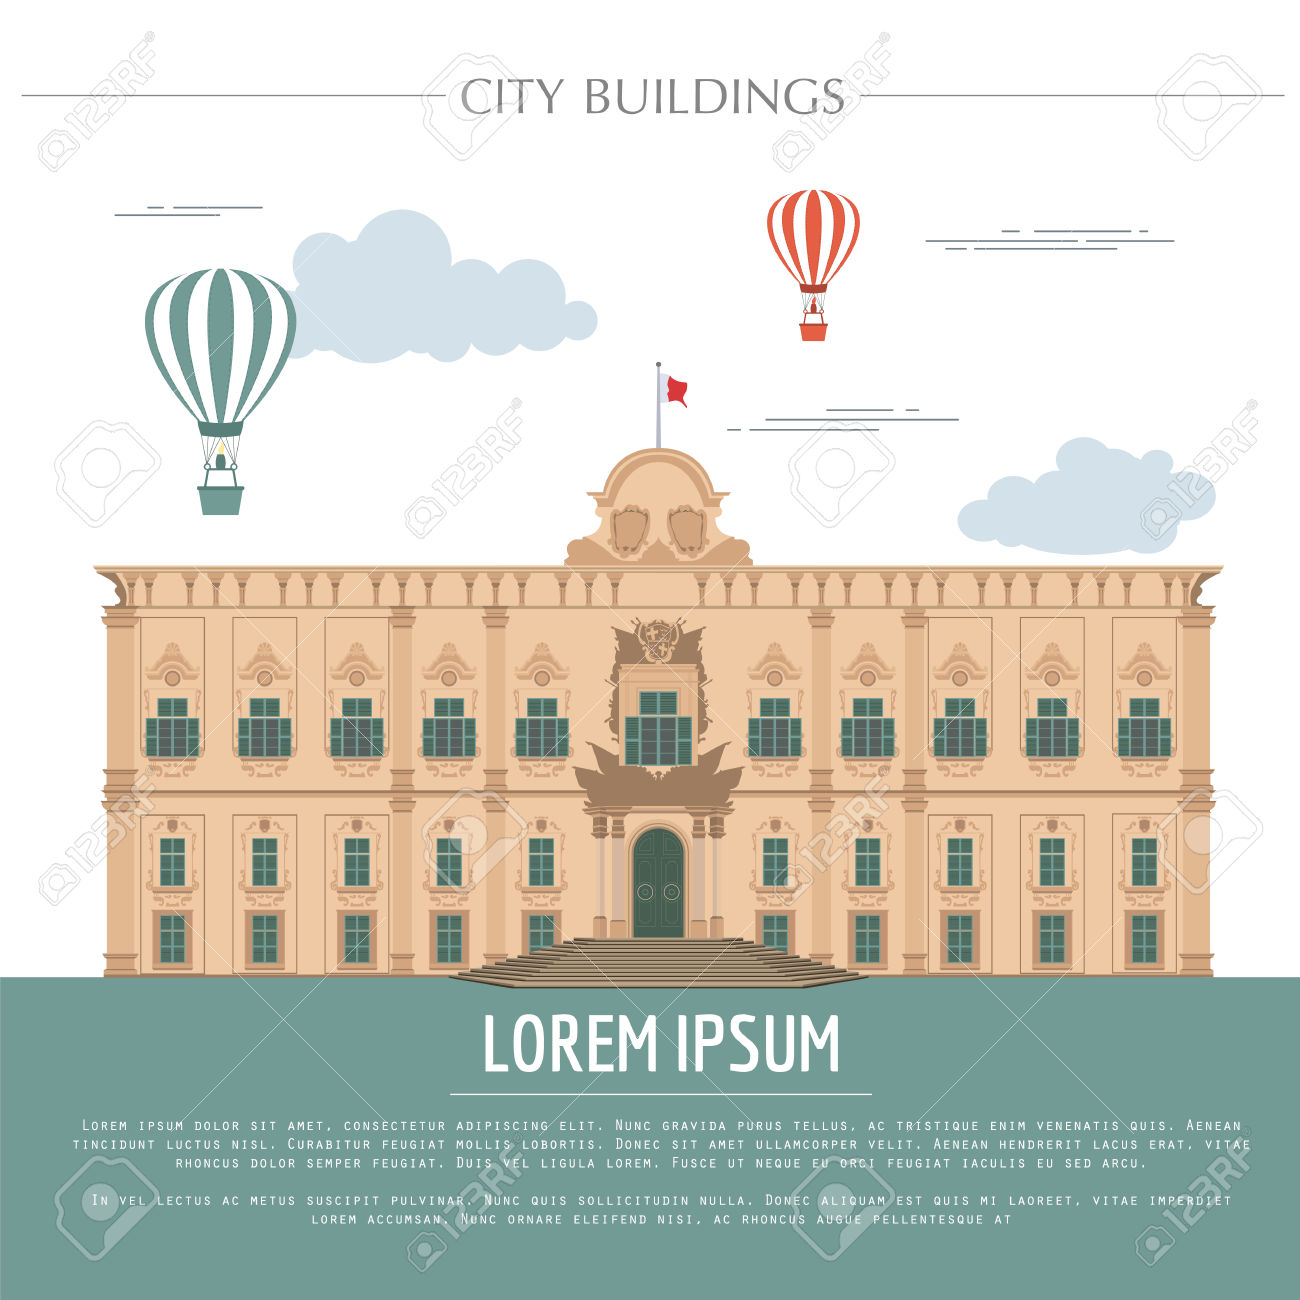 City Buildings Graphic Template. Grand Master Palace. Vector.